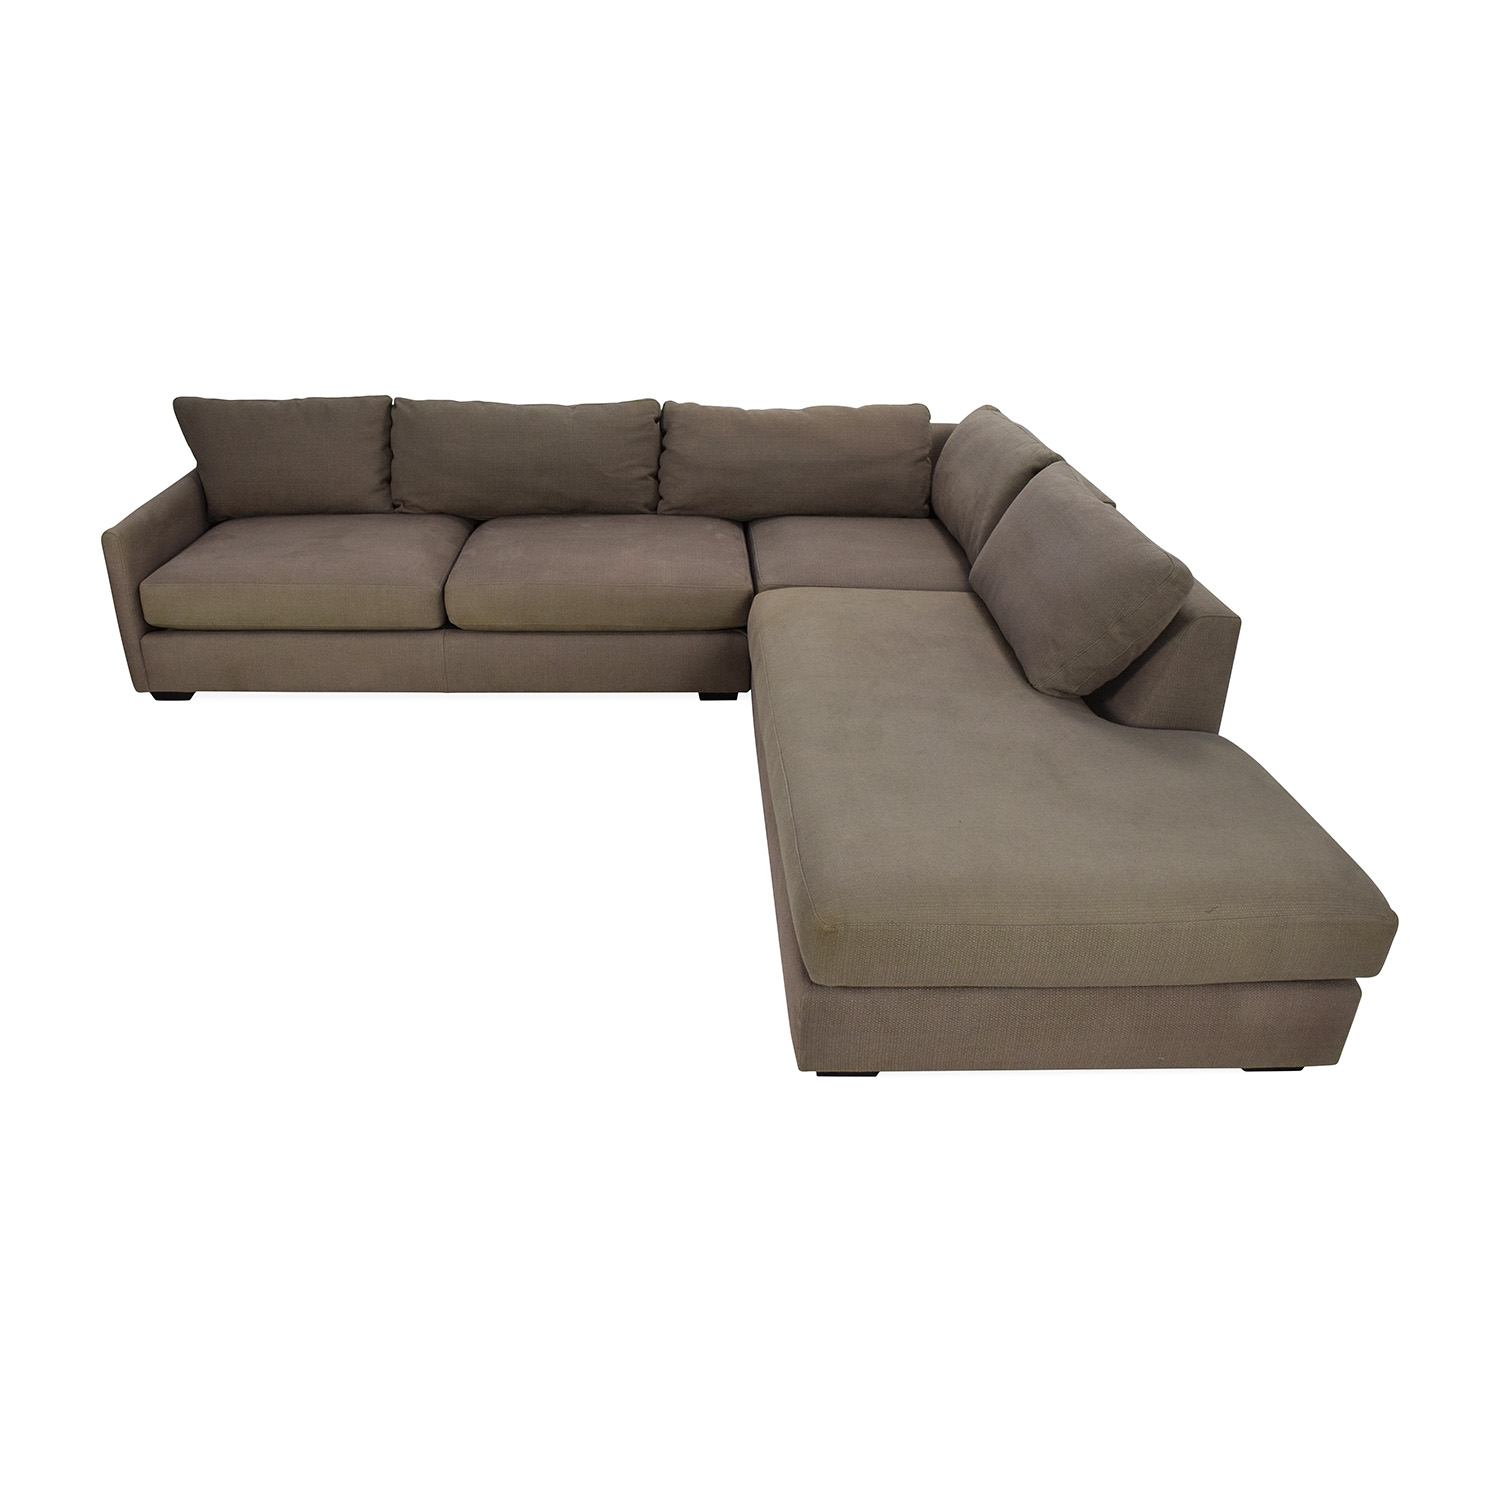 Crate And Barrel Domino Sectional Sofa